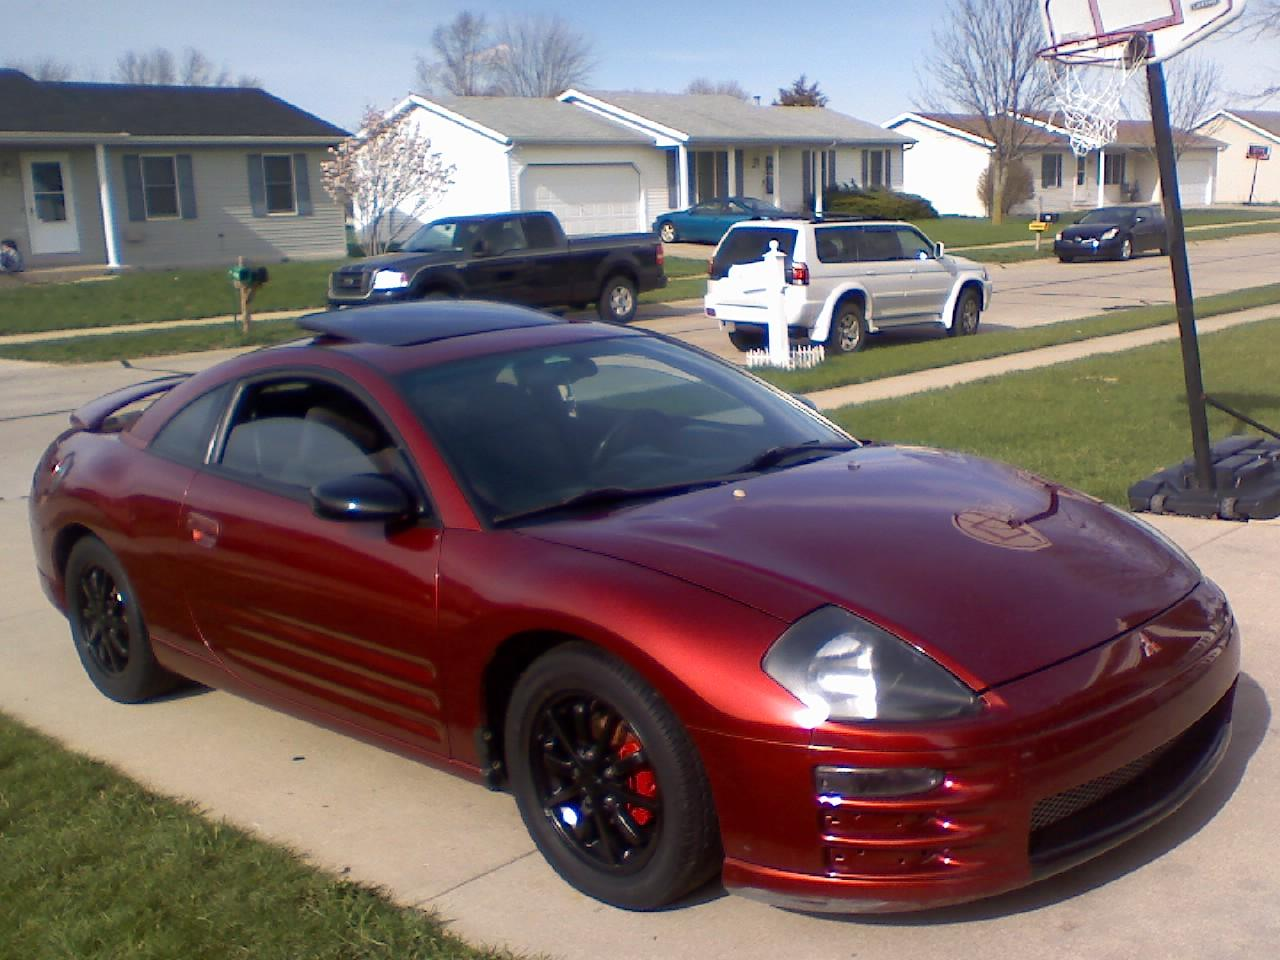 2000 Mitsubishi Eclipse >> edgarls 2000 Mitsubishi EclipseGS Coupe 2D Specs, Photos, Modification Info at CarDomain